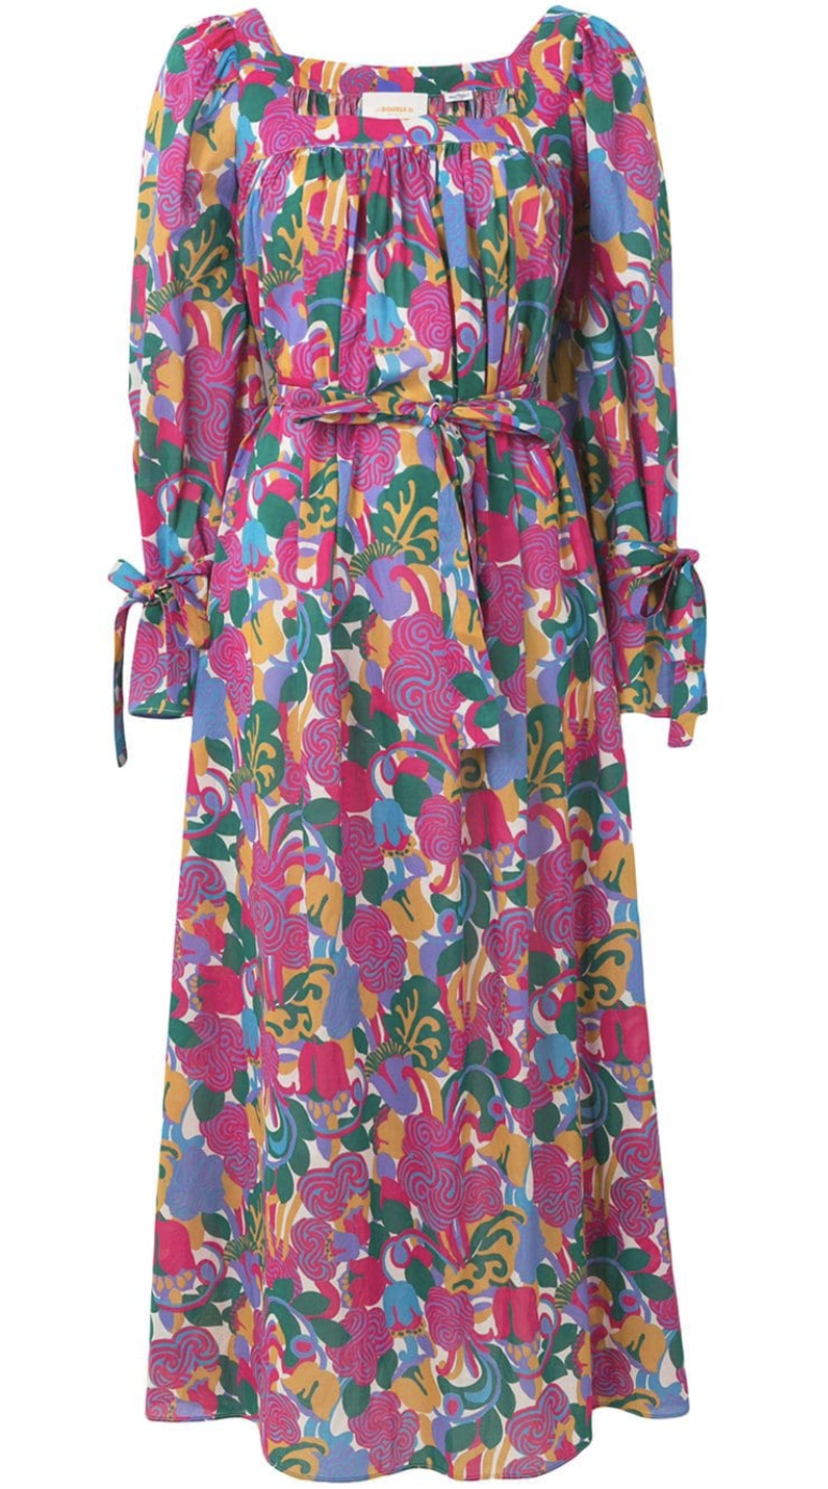 La Double J After Swim Dress in Zoo Rosa (Originally $775) Dresses Sale